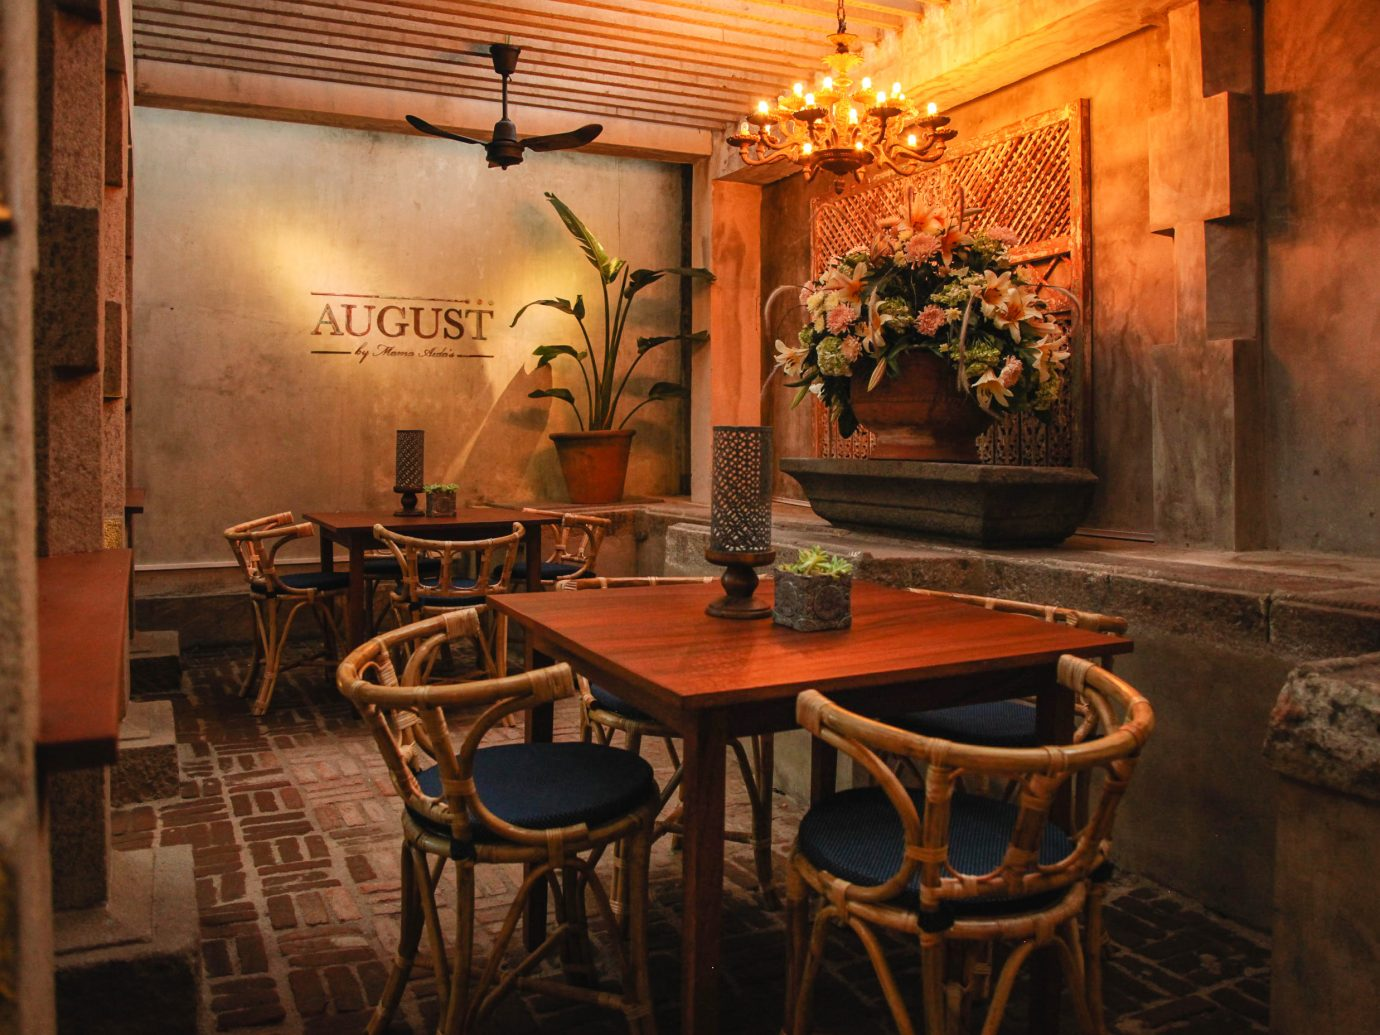 August by Mama Aida's food colombo meal social seat chair